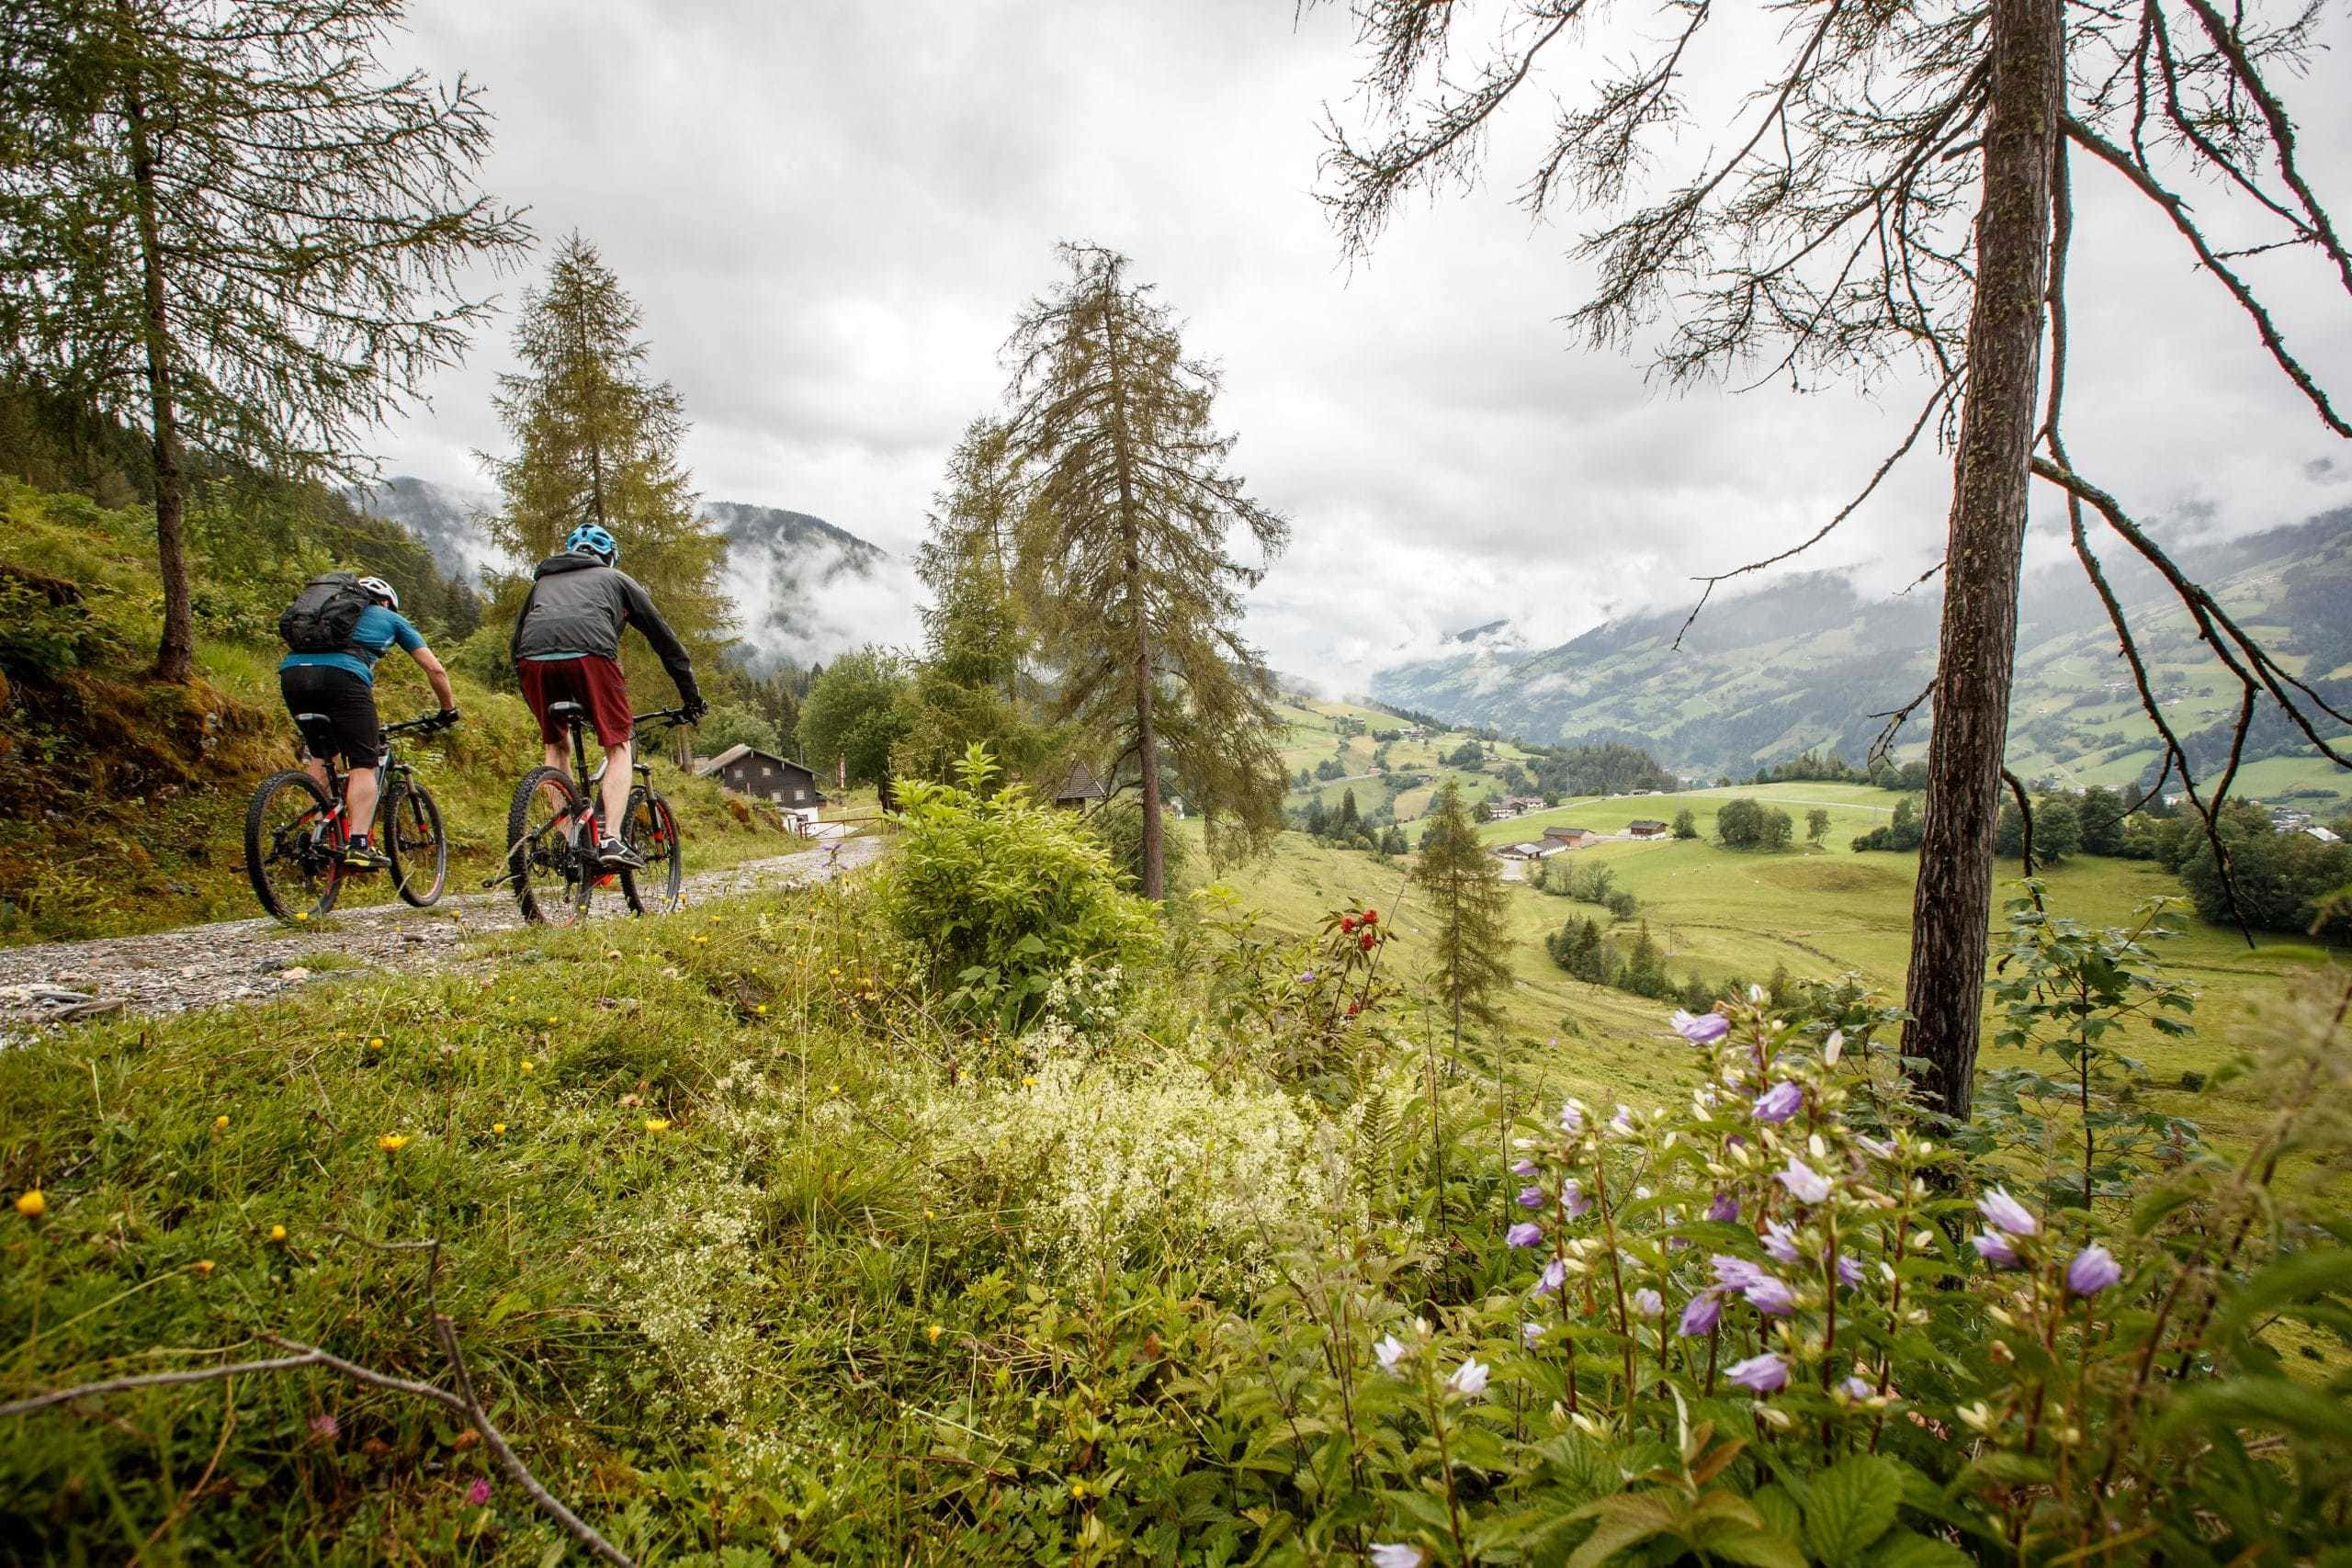 With the mountainbike to the Kapelleralp